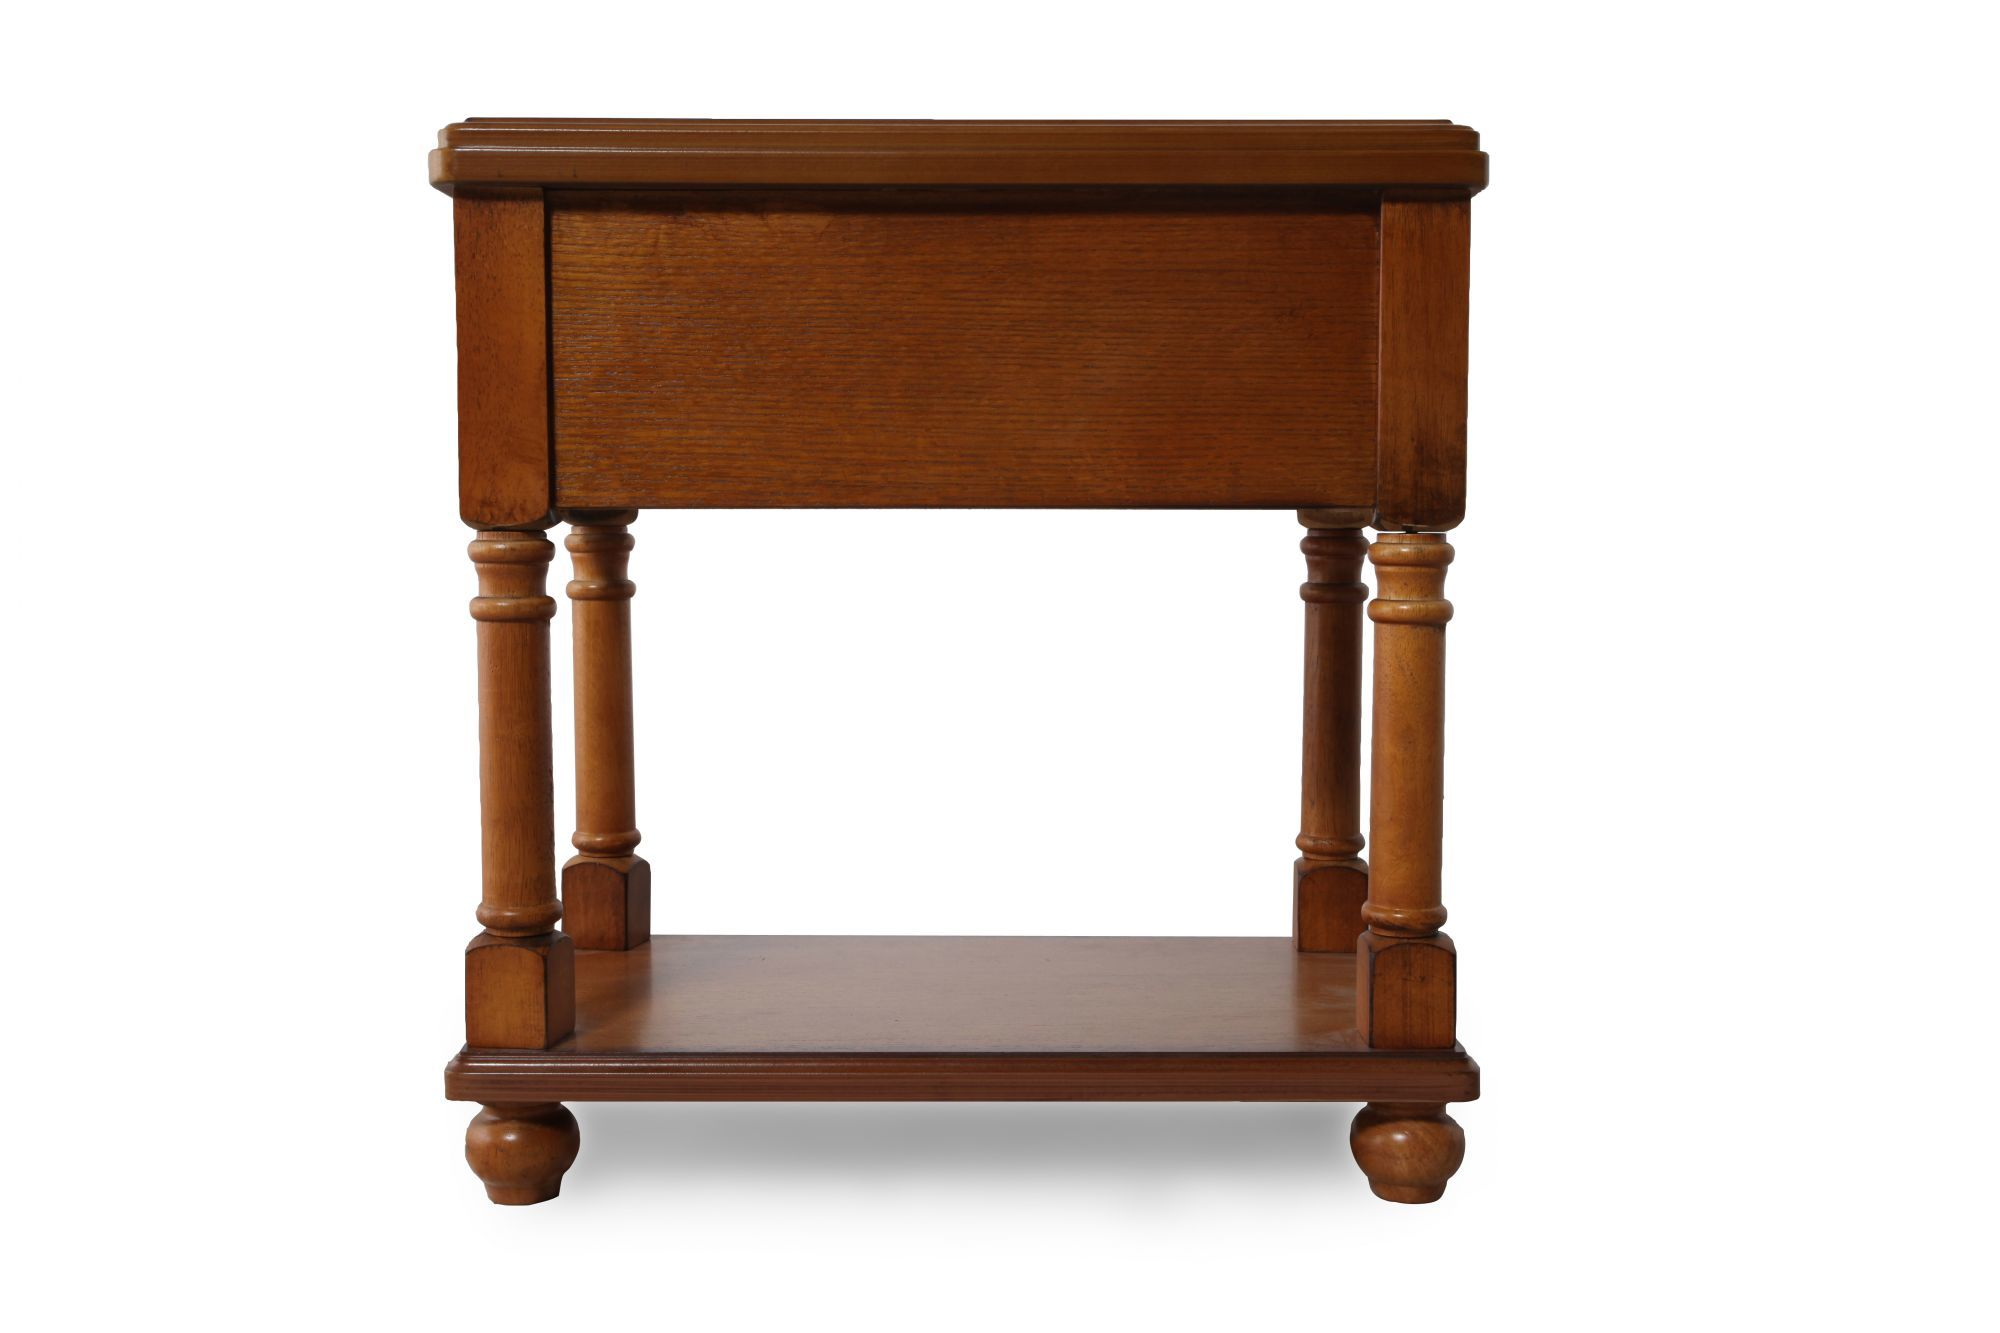 one drawer traditional chairside accent end table rustic brown ash tables with drawers maple small trestle legs dining room centerpieces everyday placemats linens art desk hobby